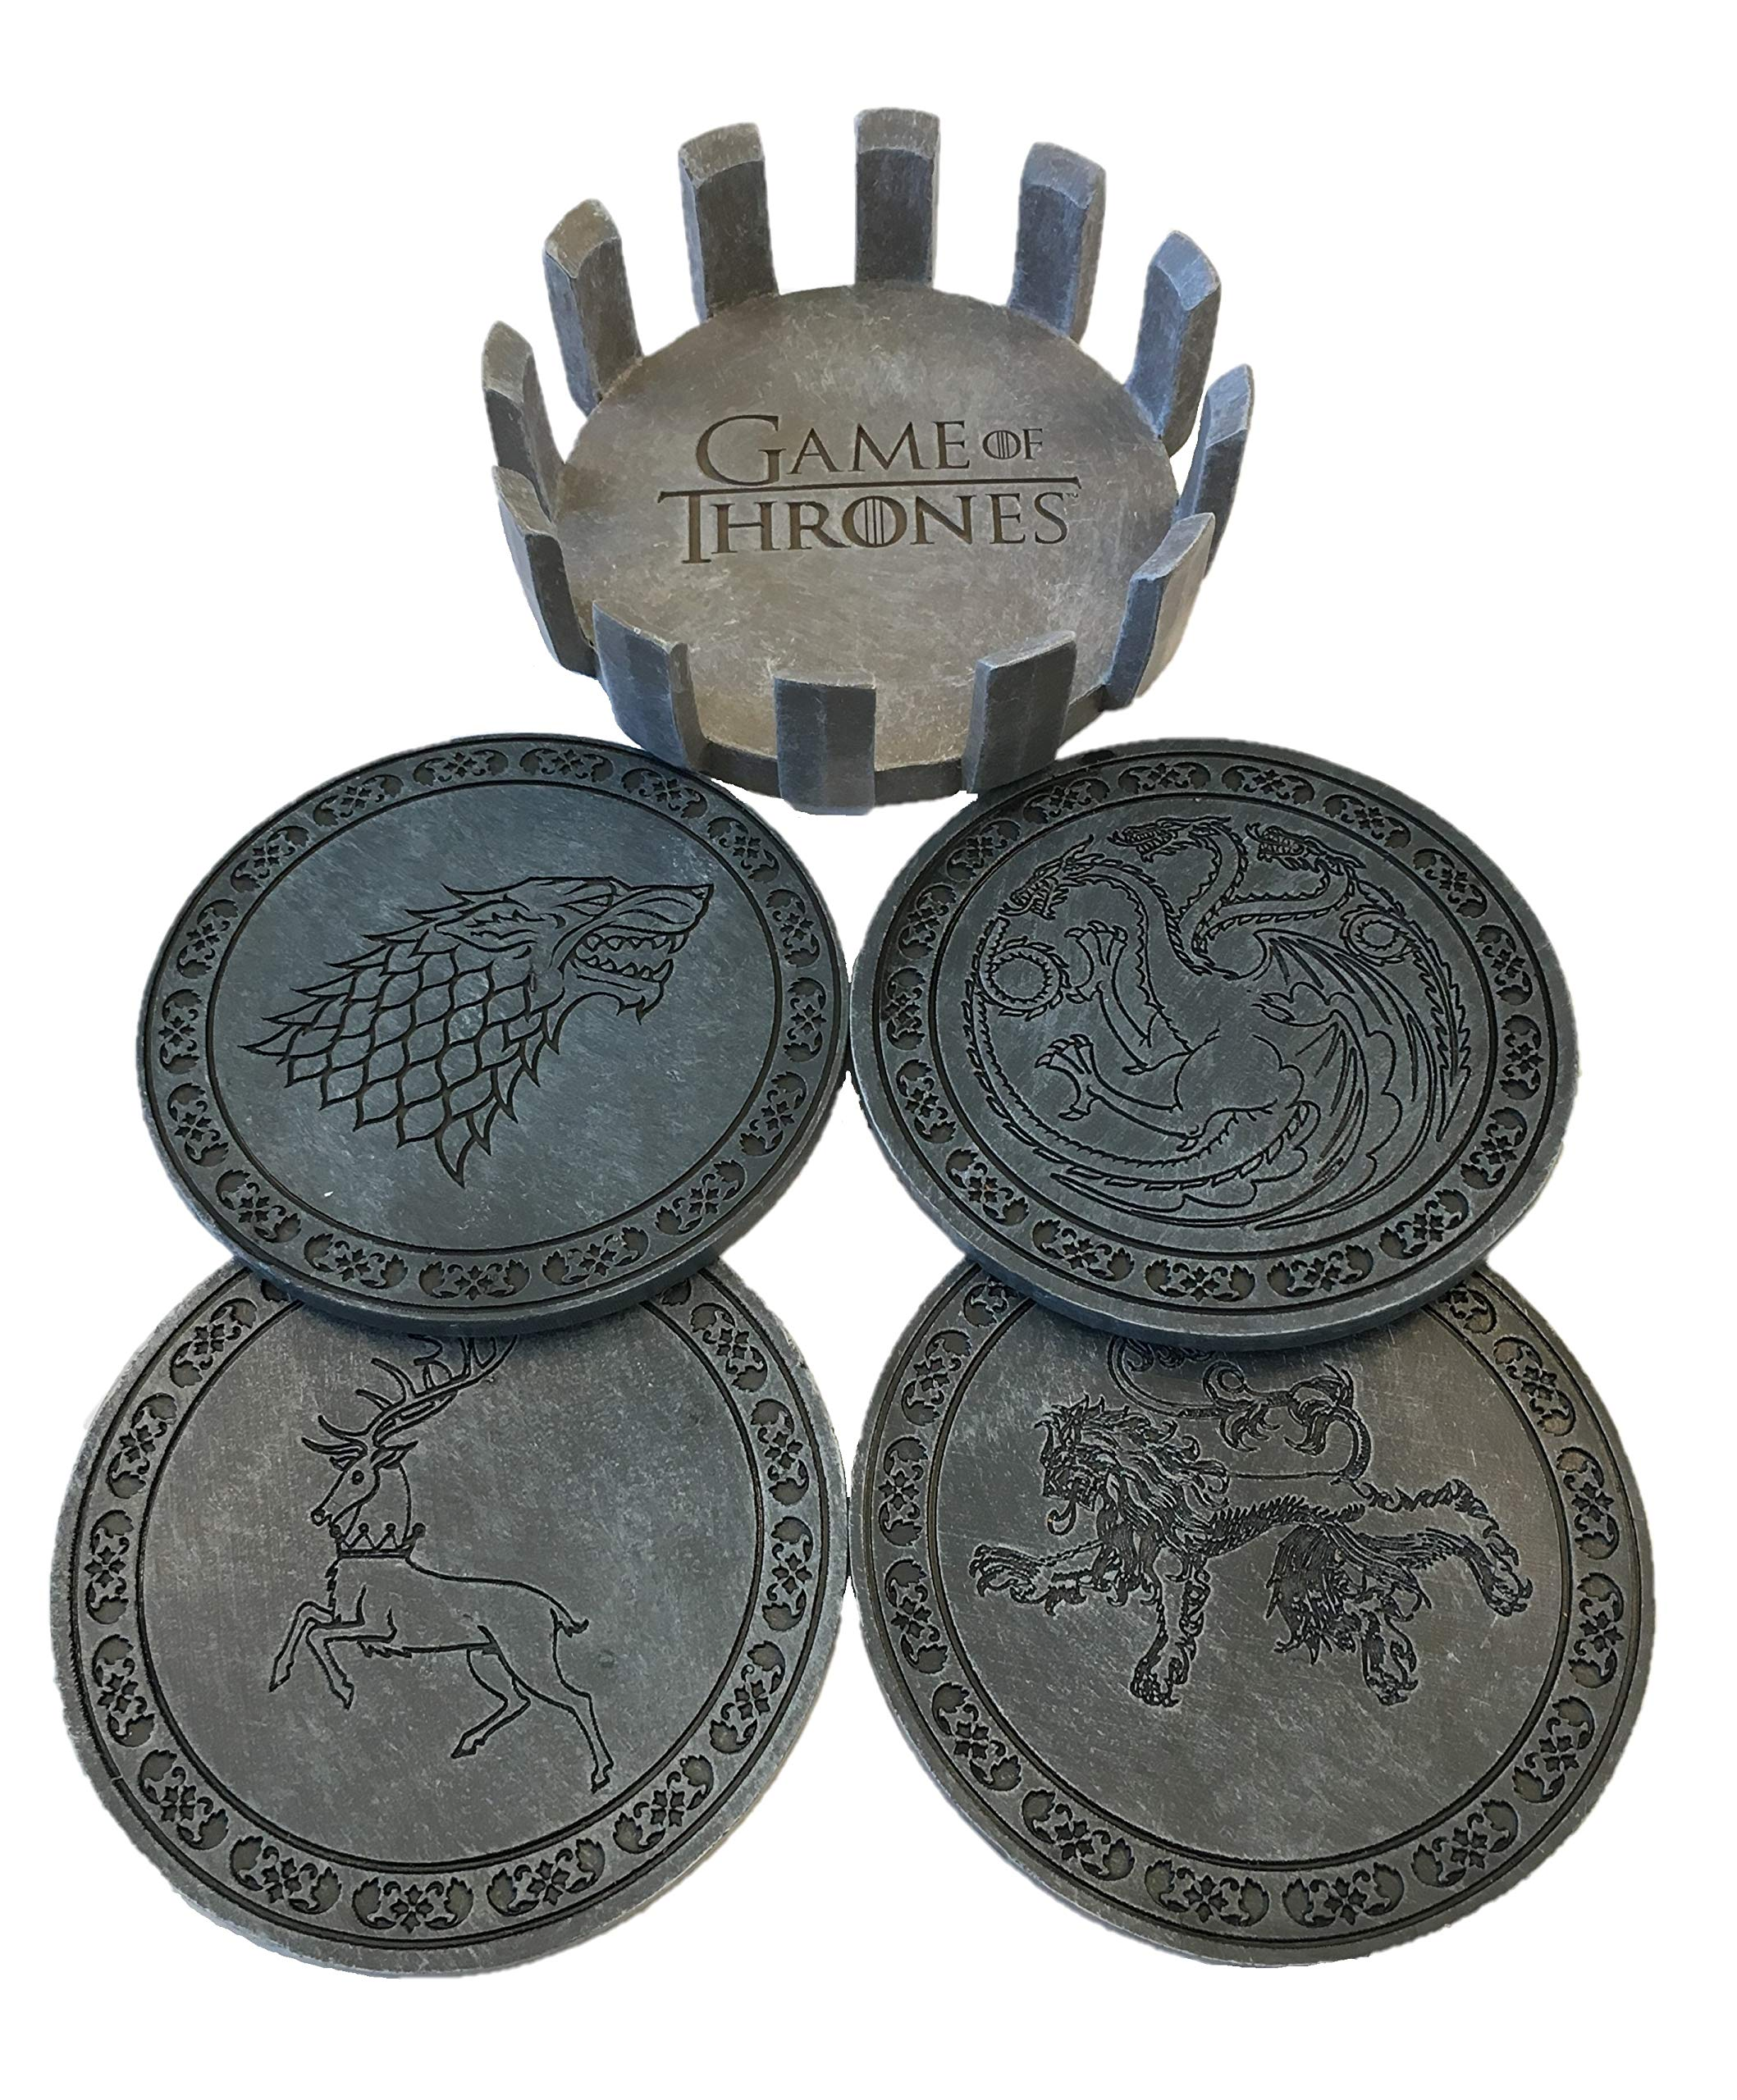 Game of Thrones Drink Coaster Set with Holder- House Sigil Beverage Coasters - Set of Four Faux Sandstone Coasters- Cork Backed by Rabbit Tanaka